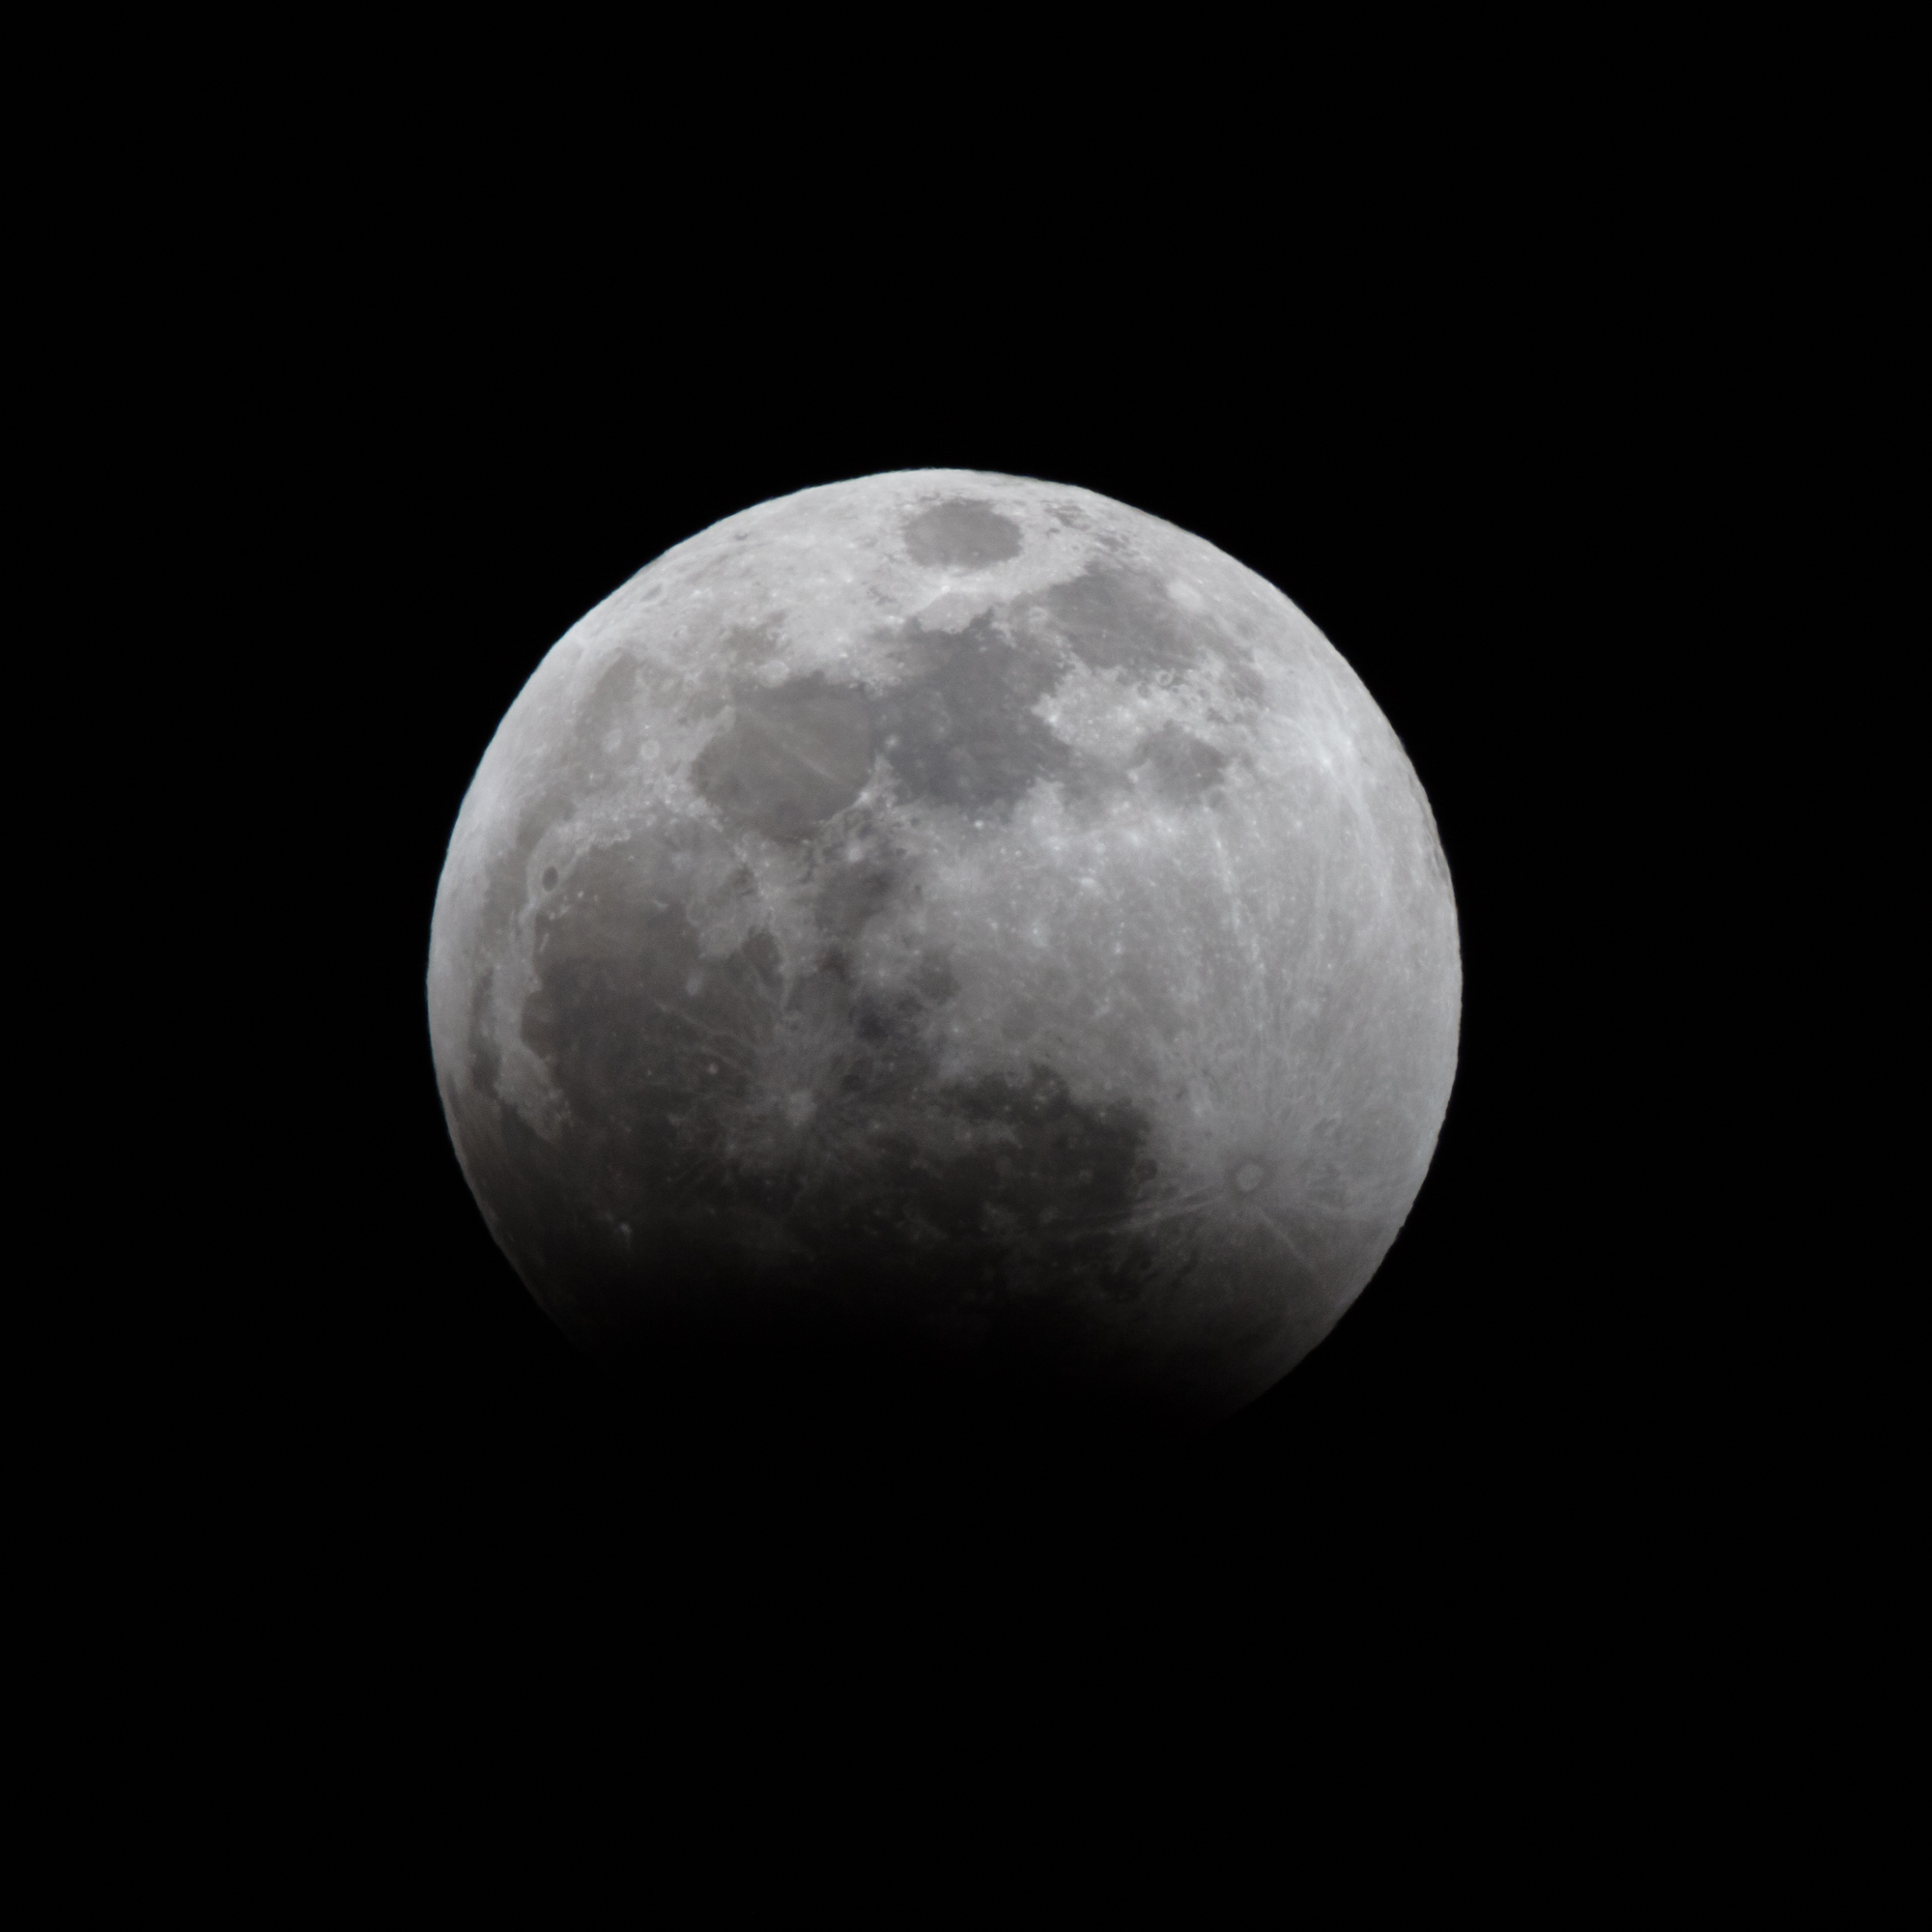 Start of the partial eclipse